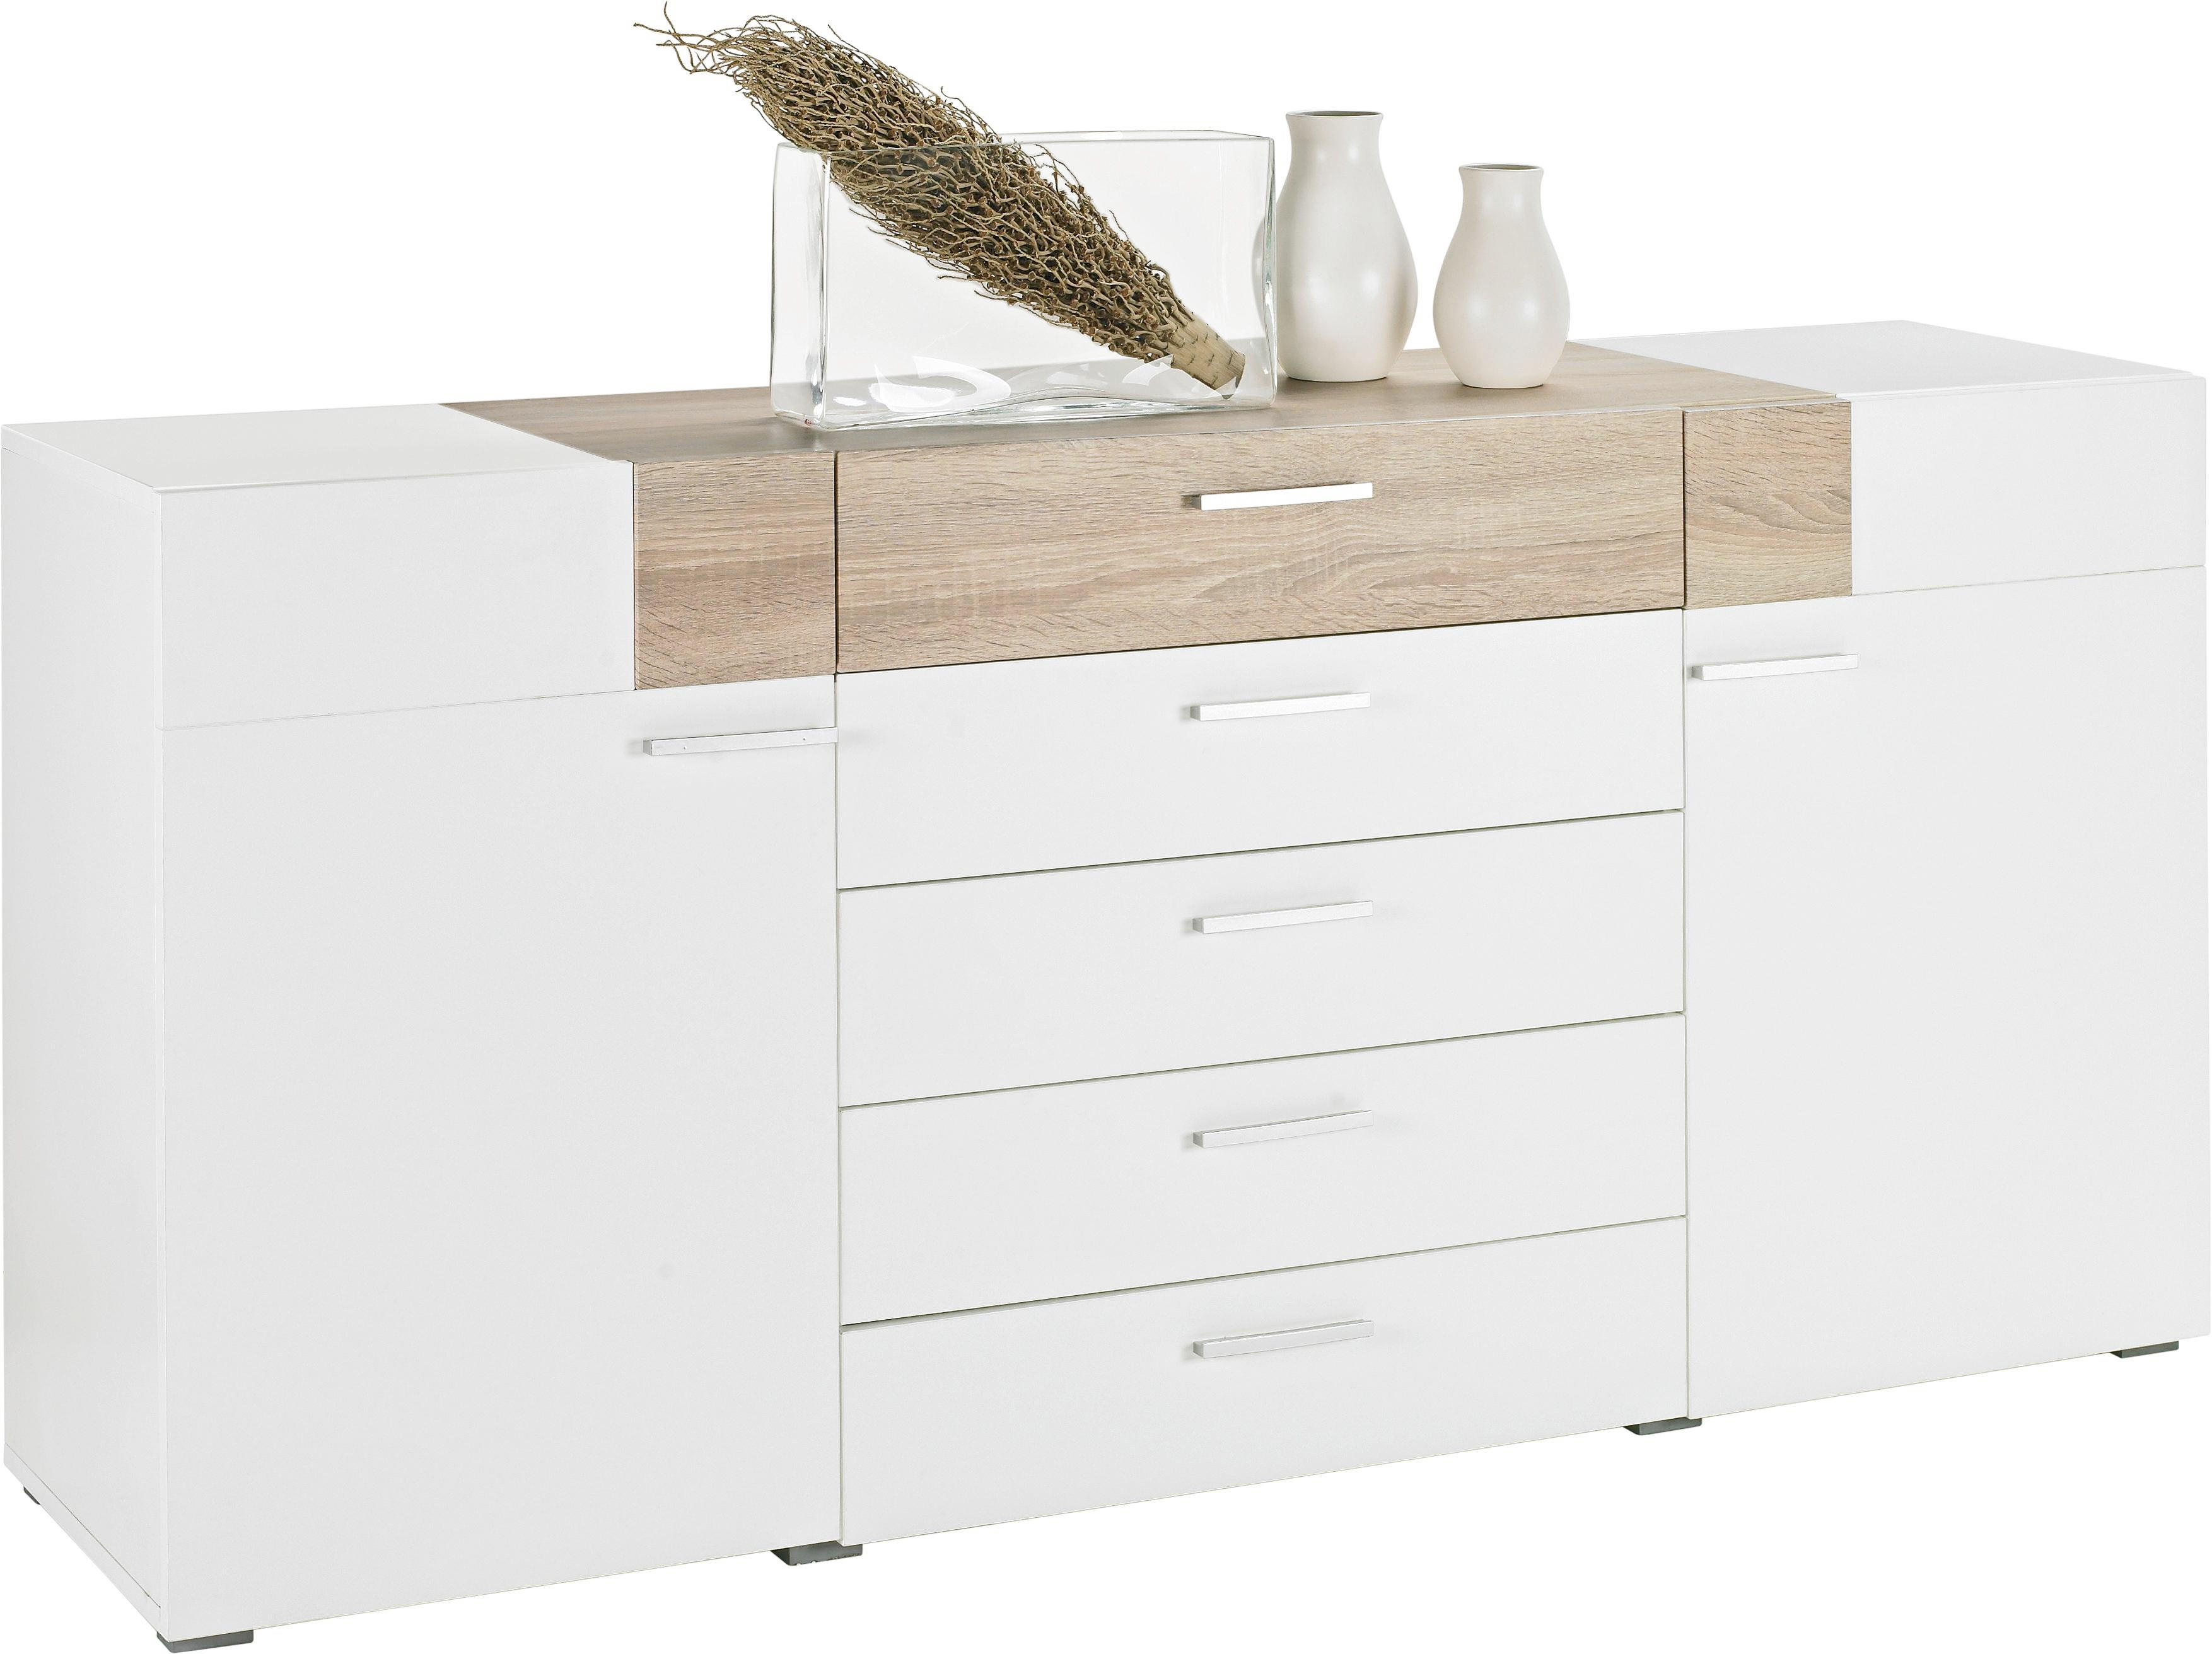 Eiche Sonoma Highboard Sonoma Eiche Wei Excellent Best Affordable With Kommode